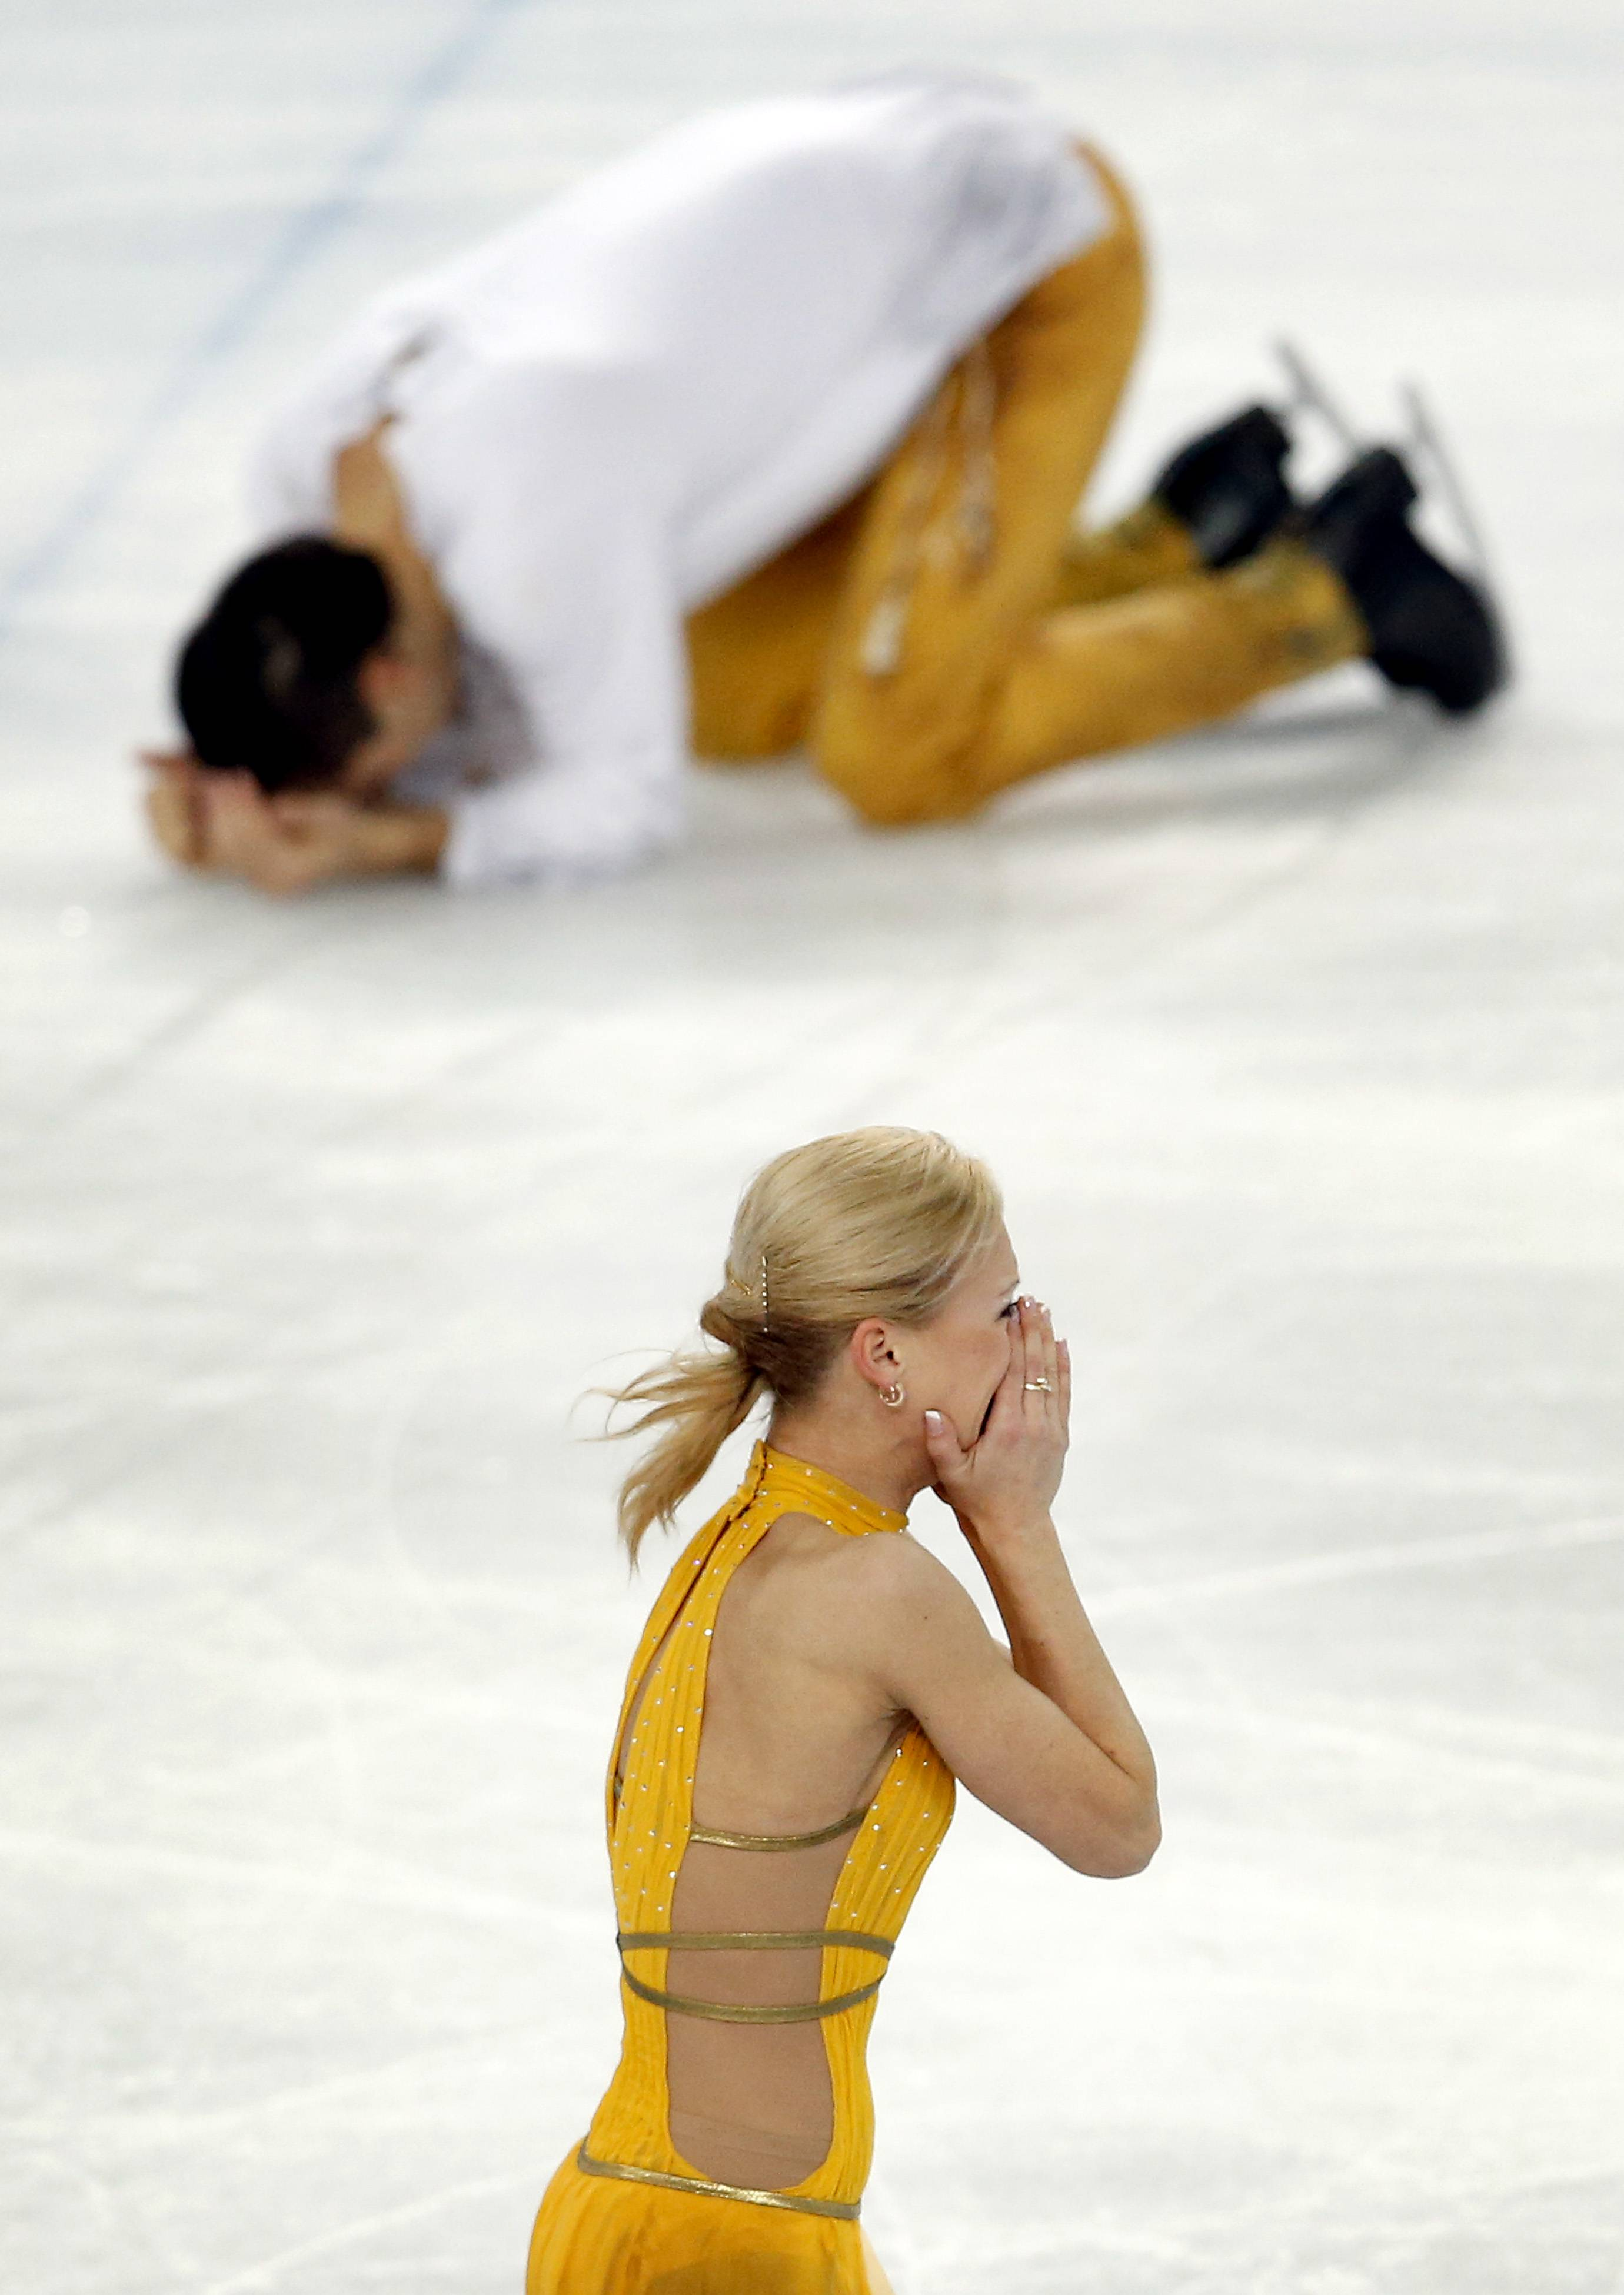 Russia's Tatiana Volosozhar, bottom, and Maxim Trankov react after finishing their routine in the pairs free skate figure skating competition at the Winter Olympics, Wednesday, Feb. 12, 2014, in Sochi, Russia. (AP Photo/Star Tribune, Carlos Gonzalez) ST. PAUL PIONEER PRESS OUT; SOFT OUT MINNEAPOLIS-AREA TV NOT TV; MAGAZINES OUT